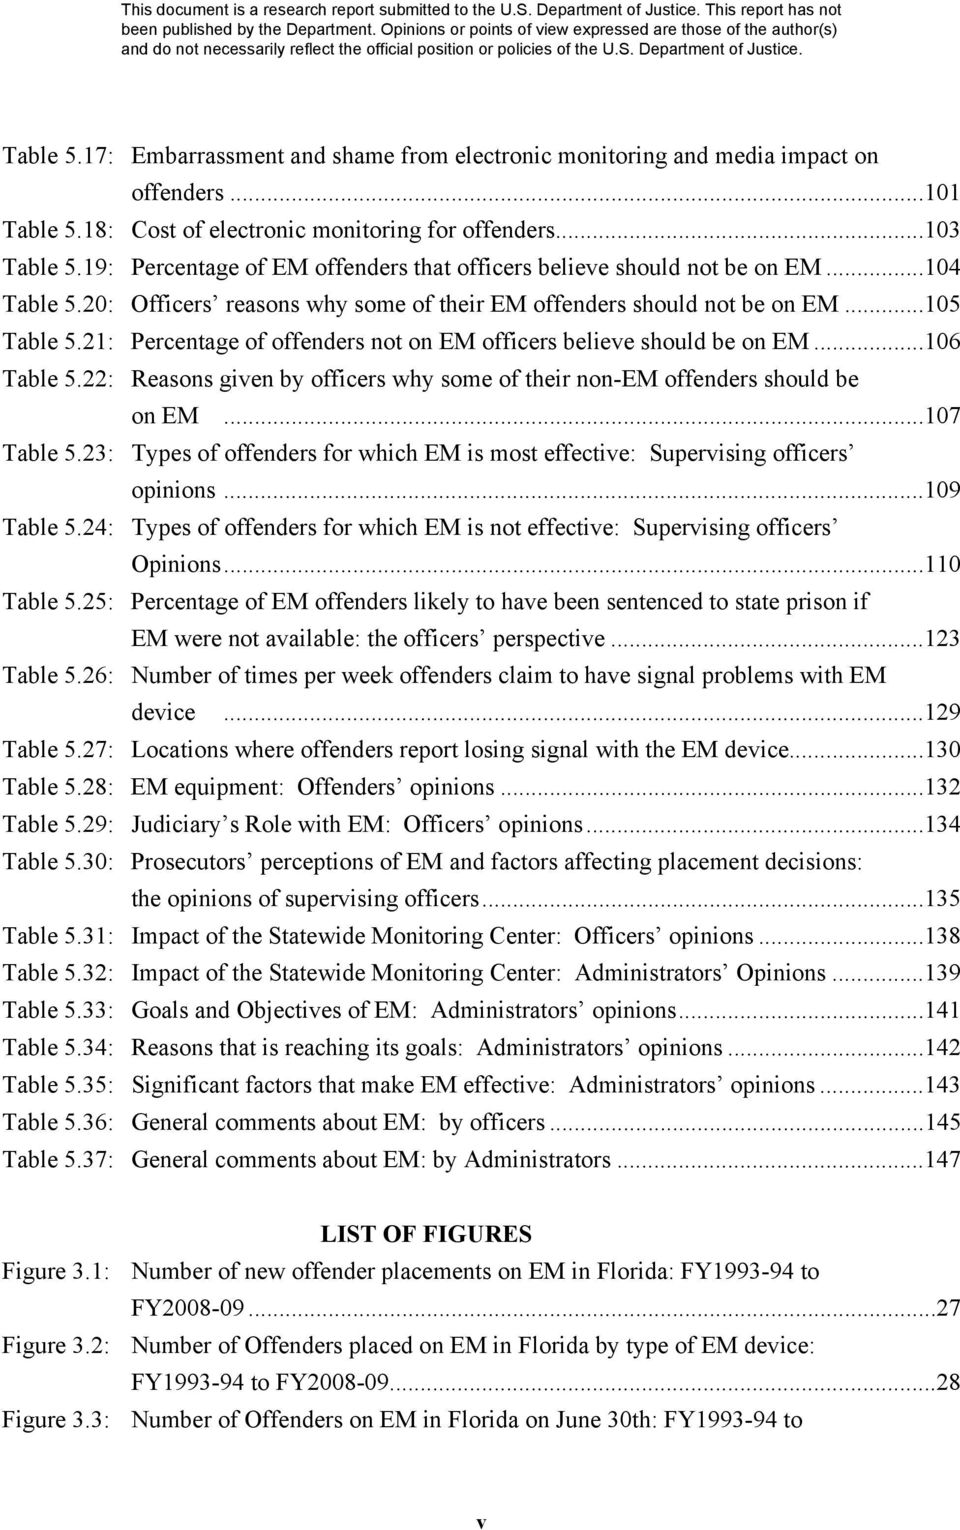 21: Percentage of offenders not on EM officers believe should be on EM...106 Table 5.22: Reasons given by officers why some of their non-em offenders should be on EM...107 Table 5.